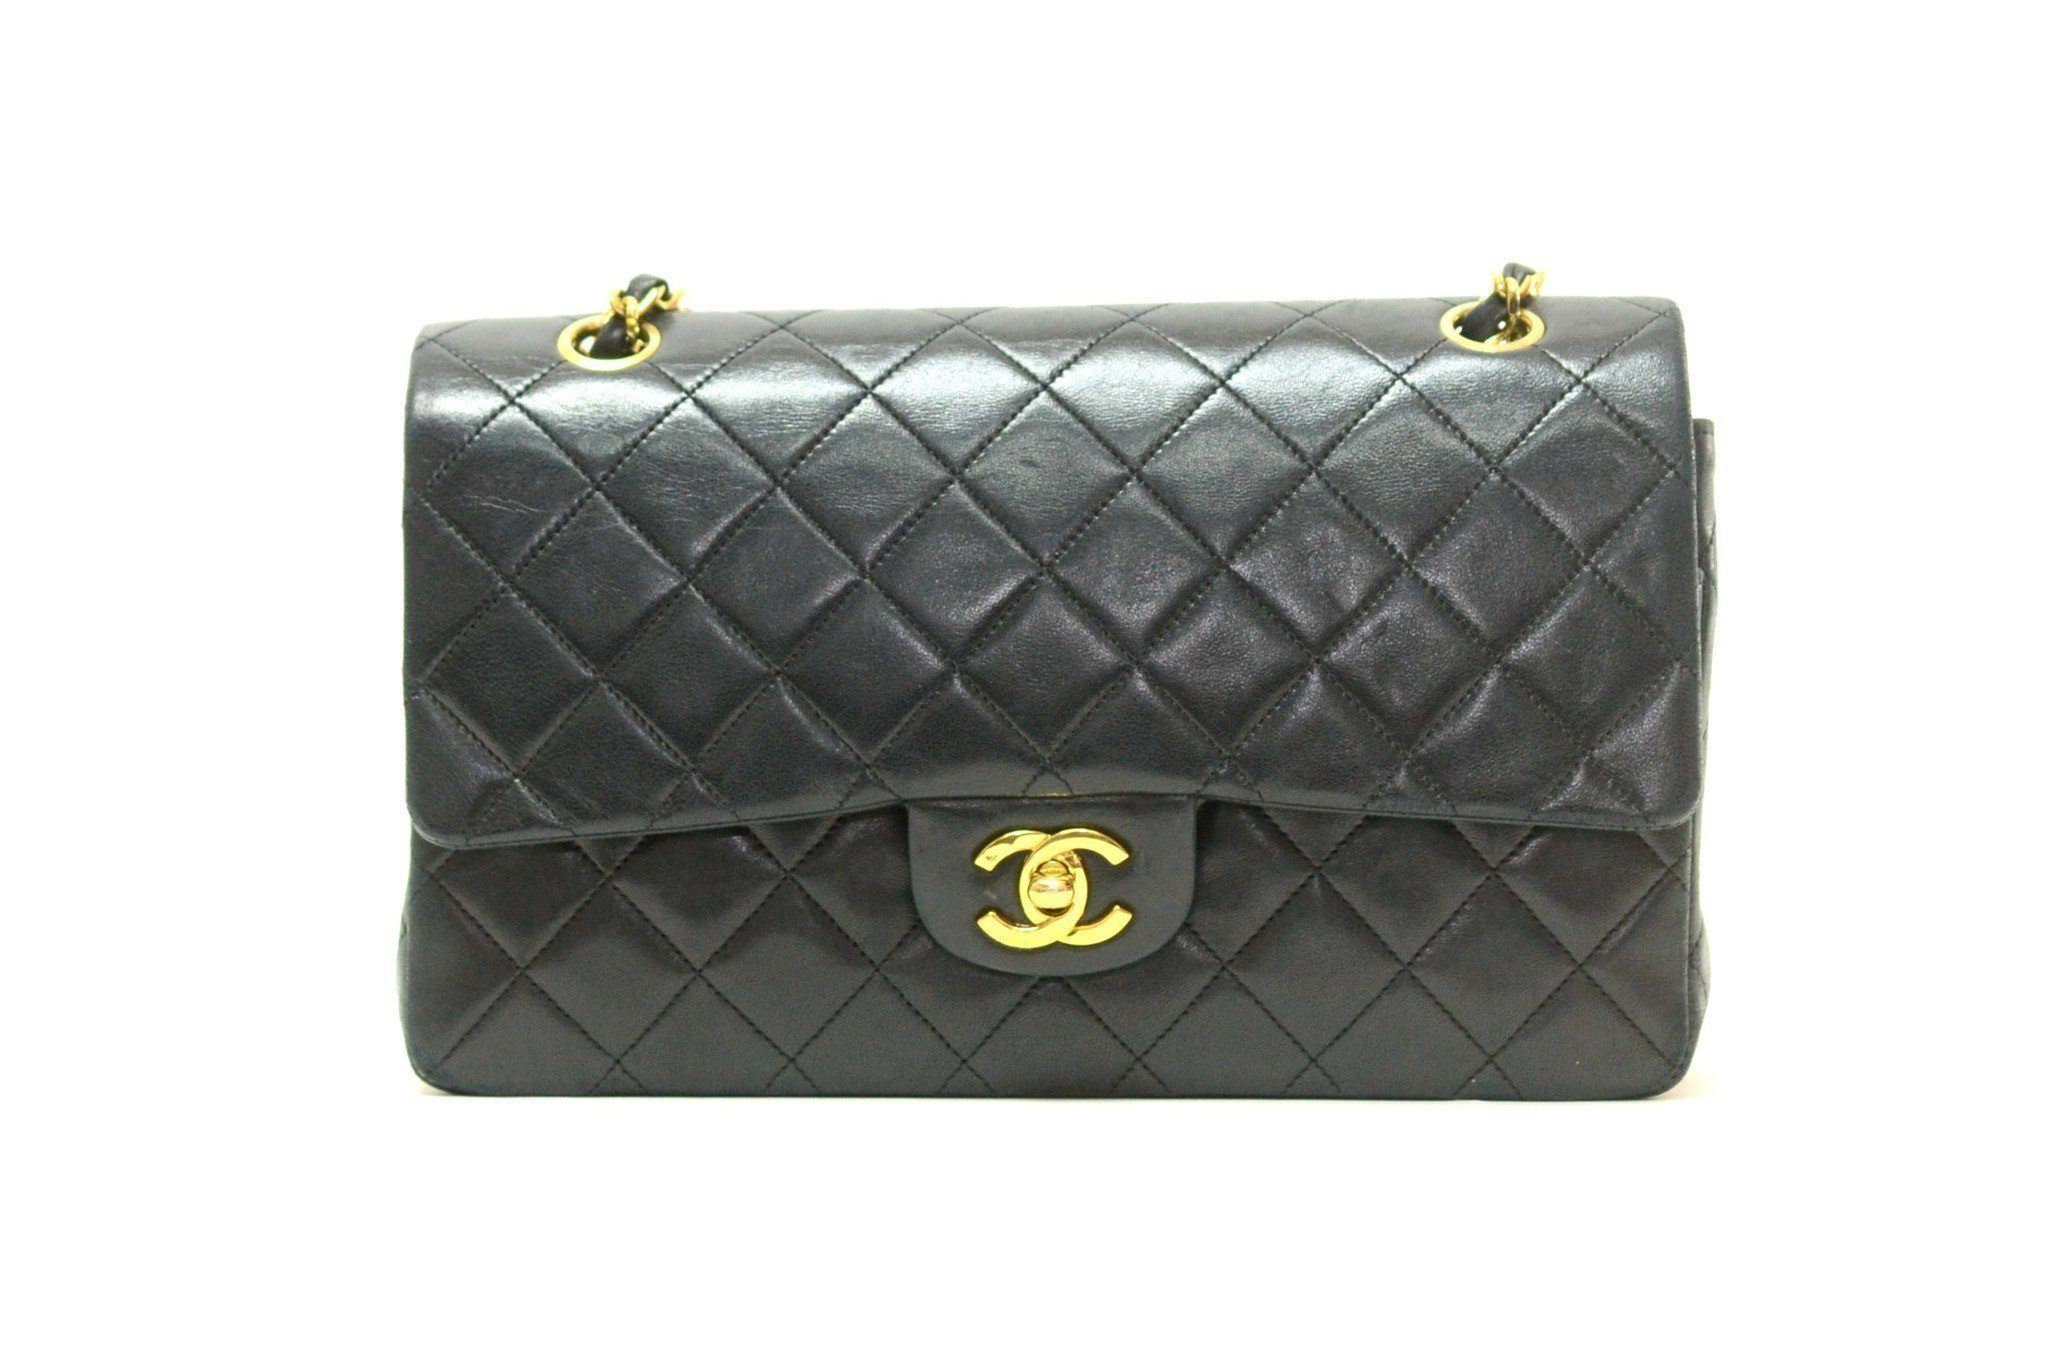 dd49de6dcc70 Authentic Vintage Chanel 25cm Bag in Black Calf Leather with Gold Hardware